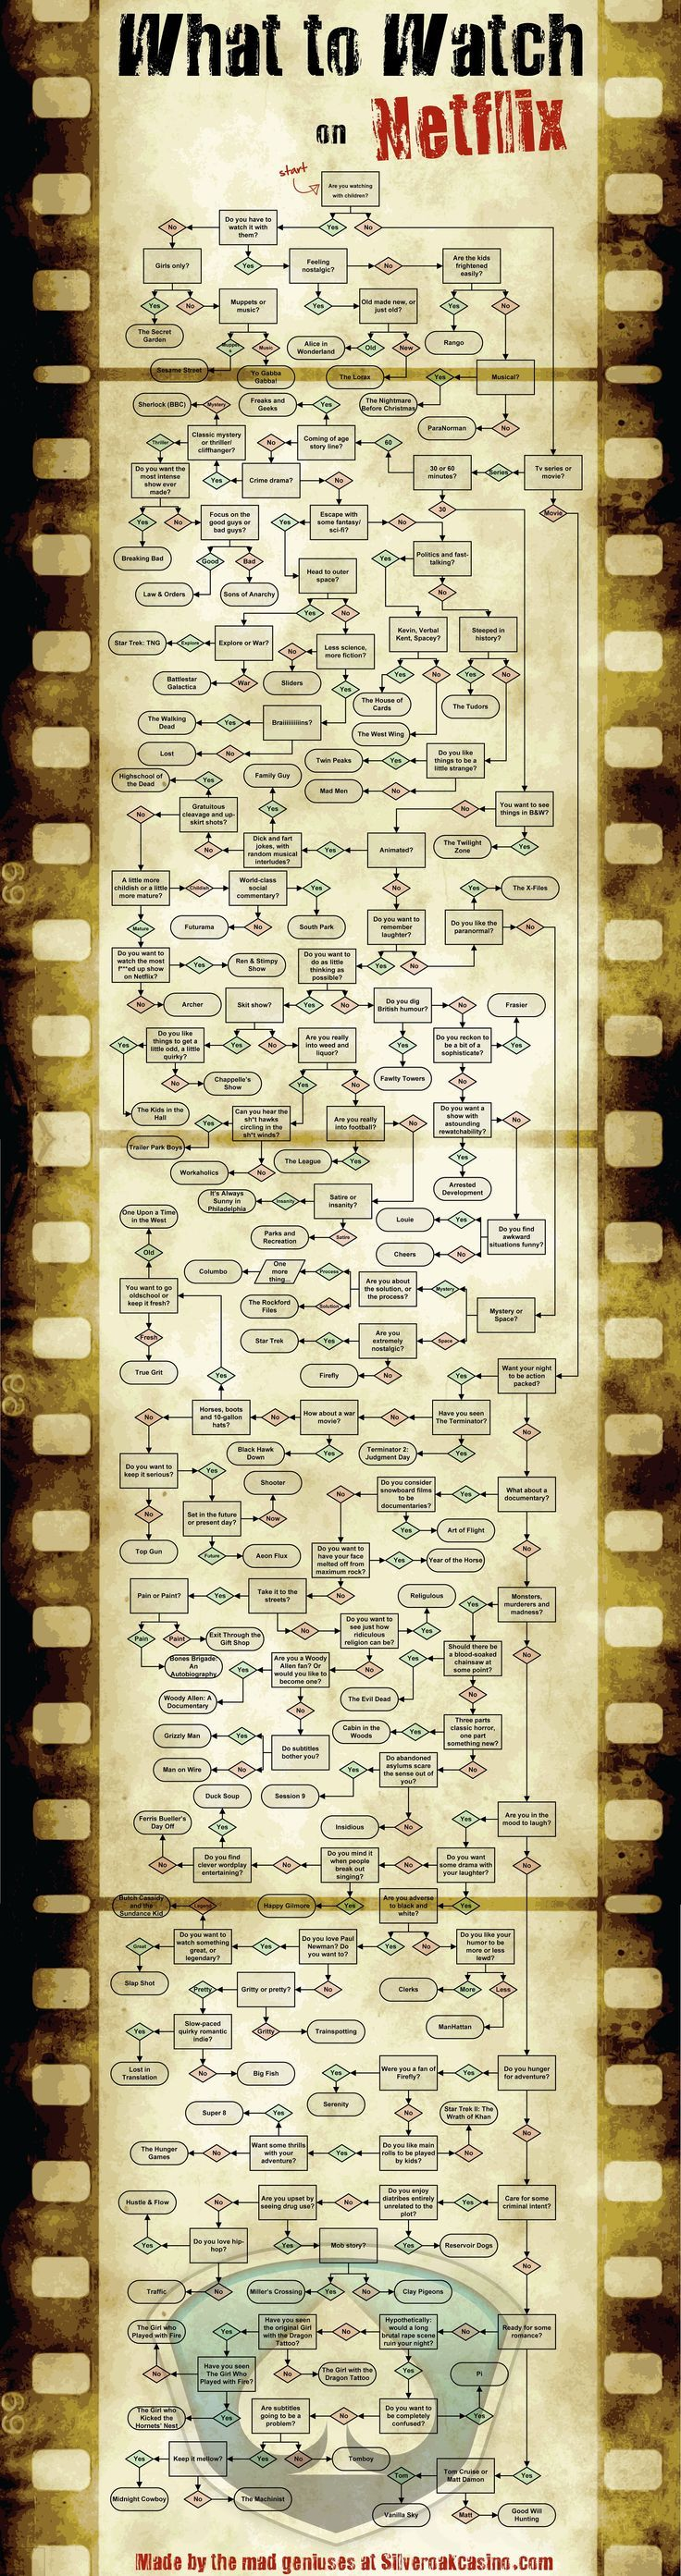 This Genius Netflix Flowchart Will Tell You Exactl…